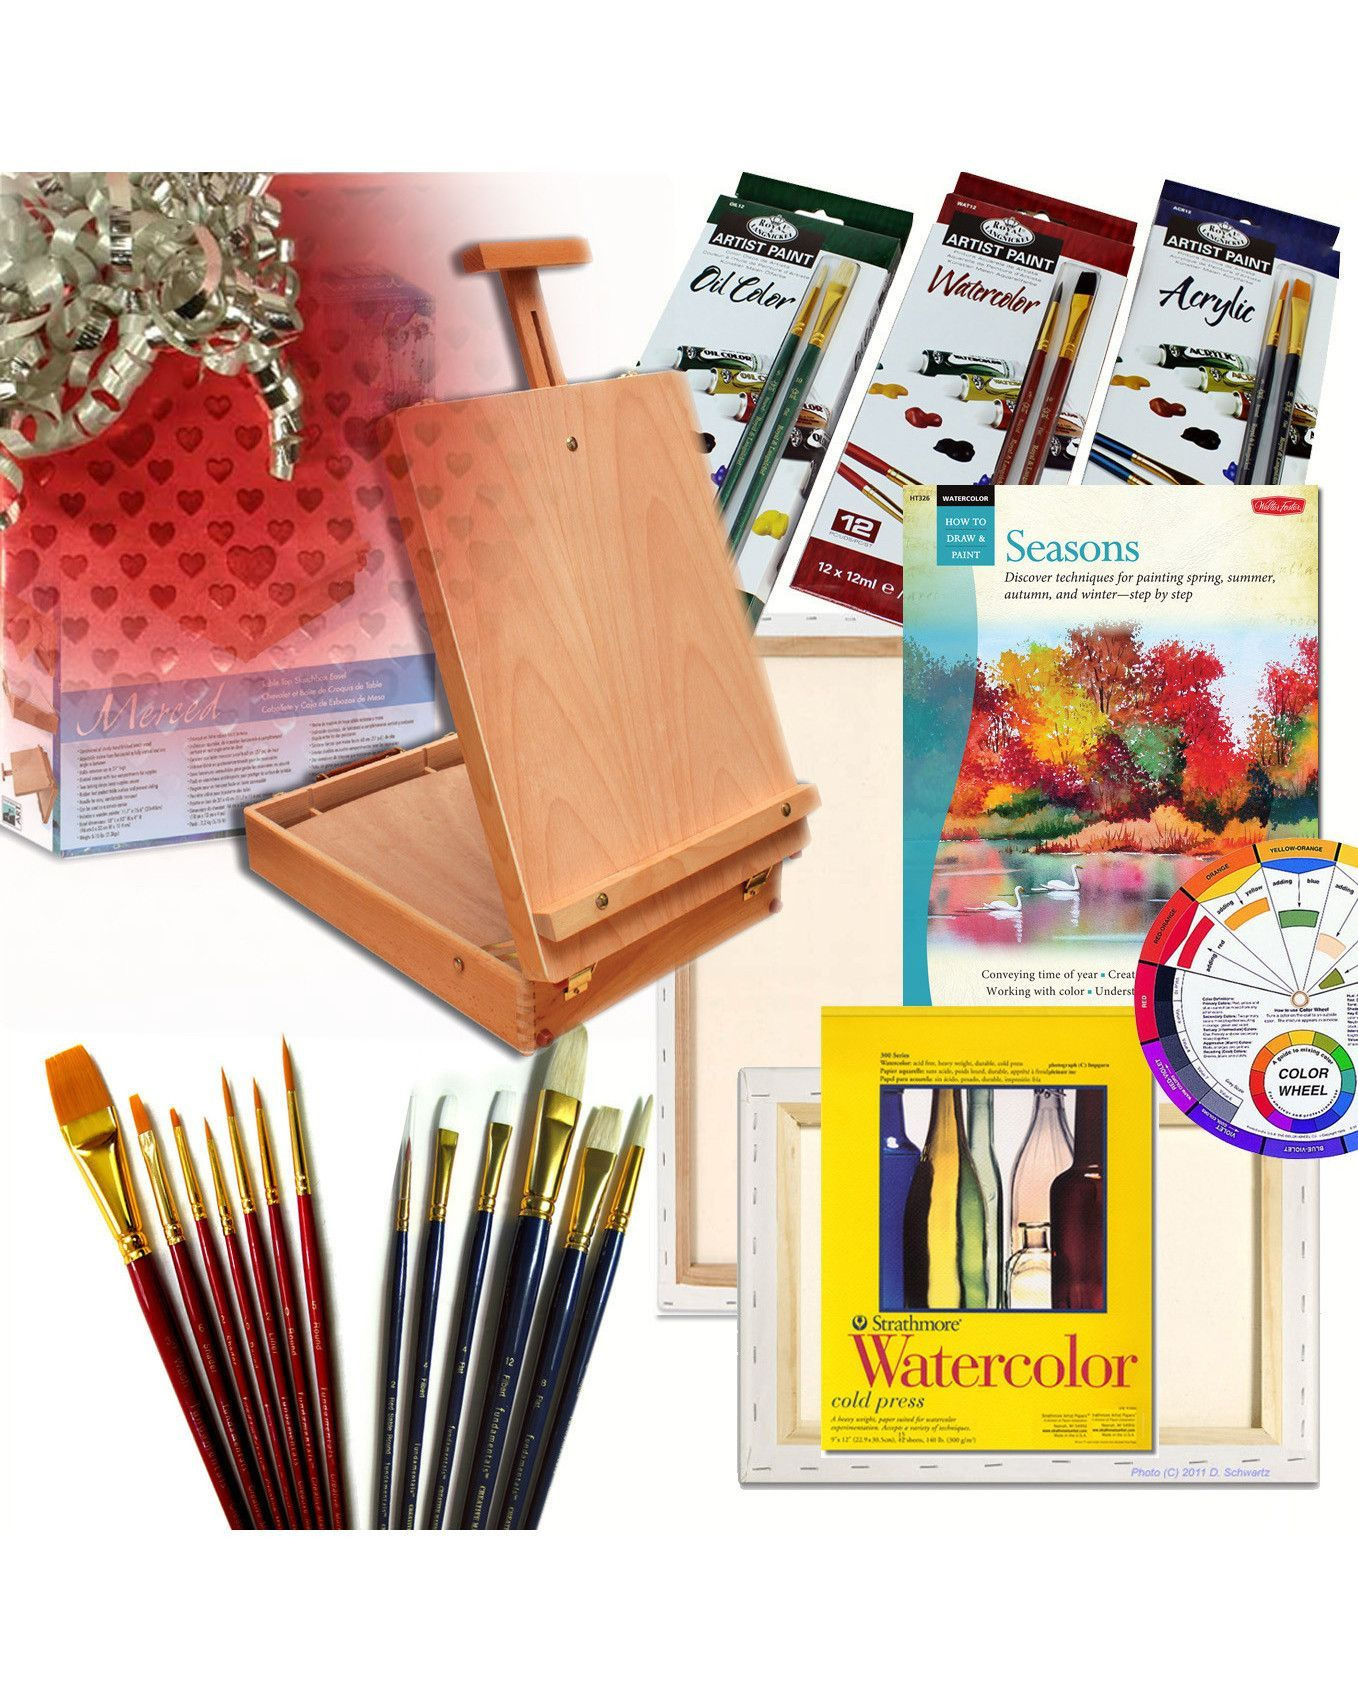 Artist Quality Table Easel with Complete Art Set Painting